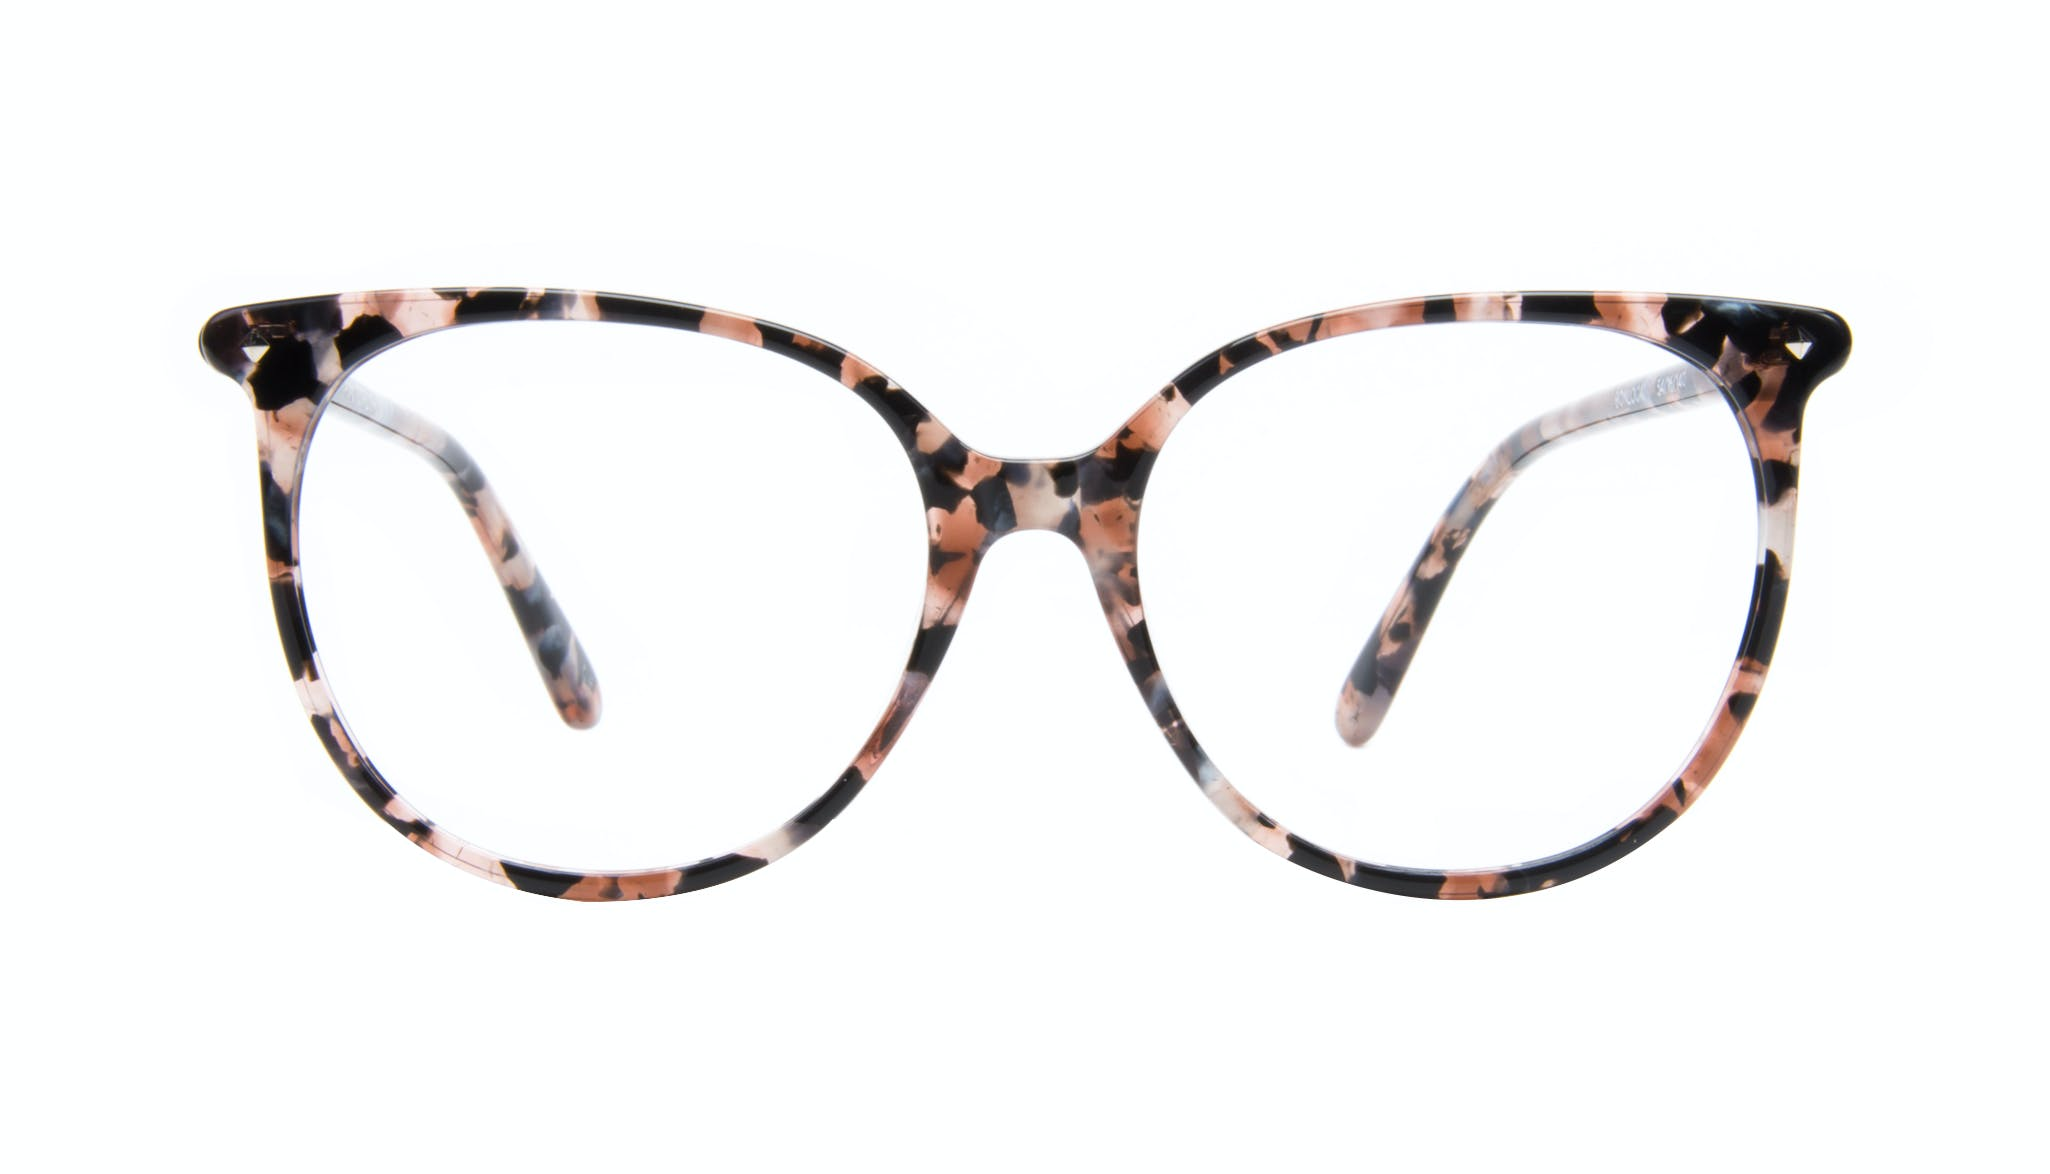 Affordable Fashion Glasses Round Eyeglasses Women Area Pink Tortoise